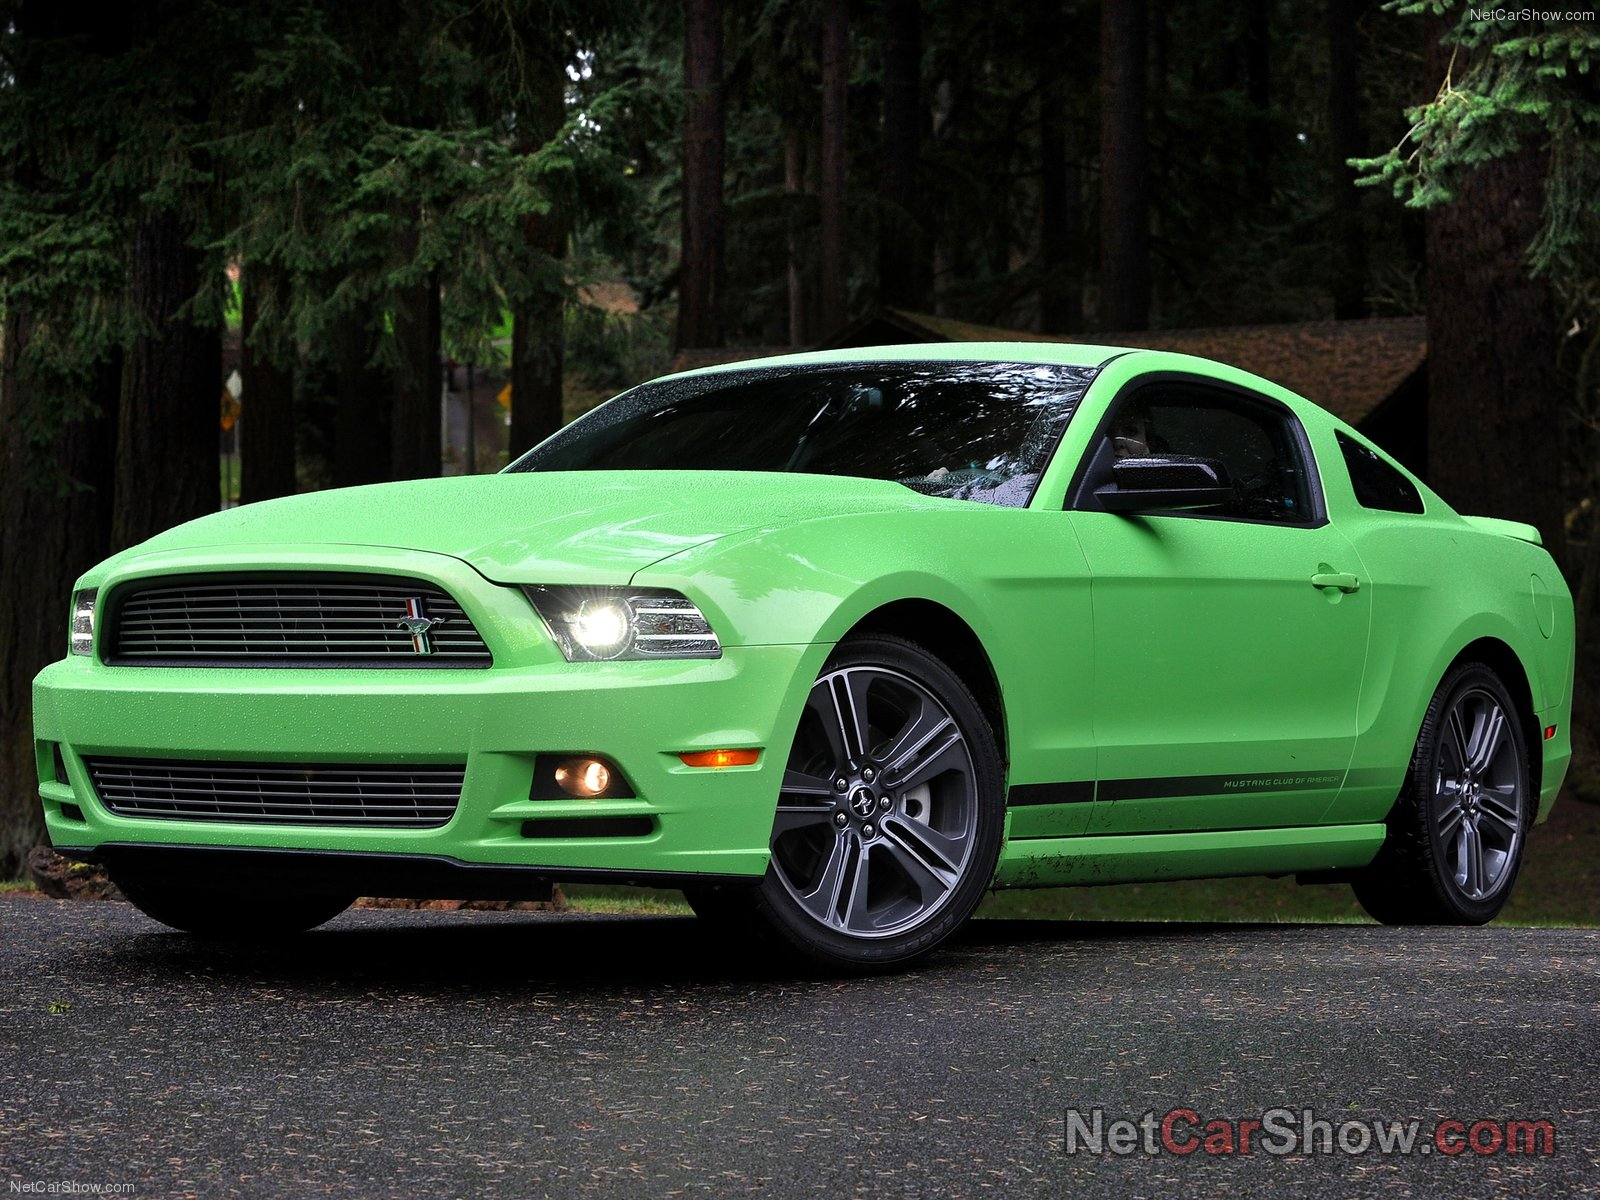 2013 Ford Mustang photo - 3